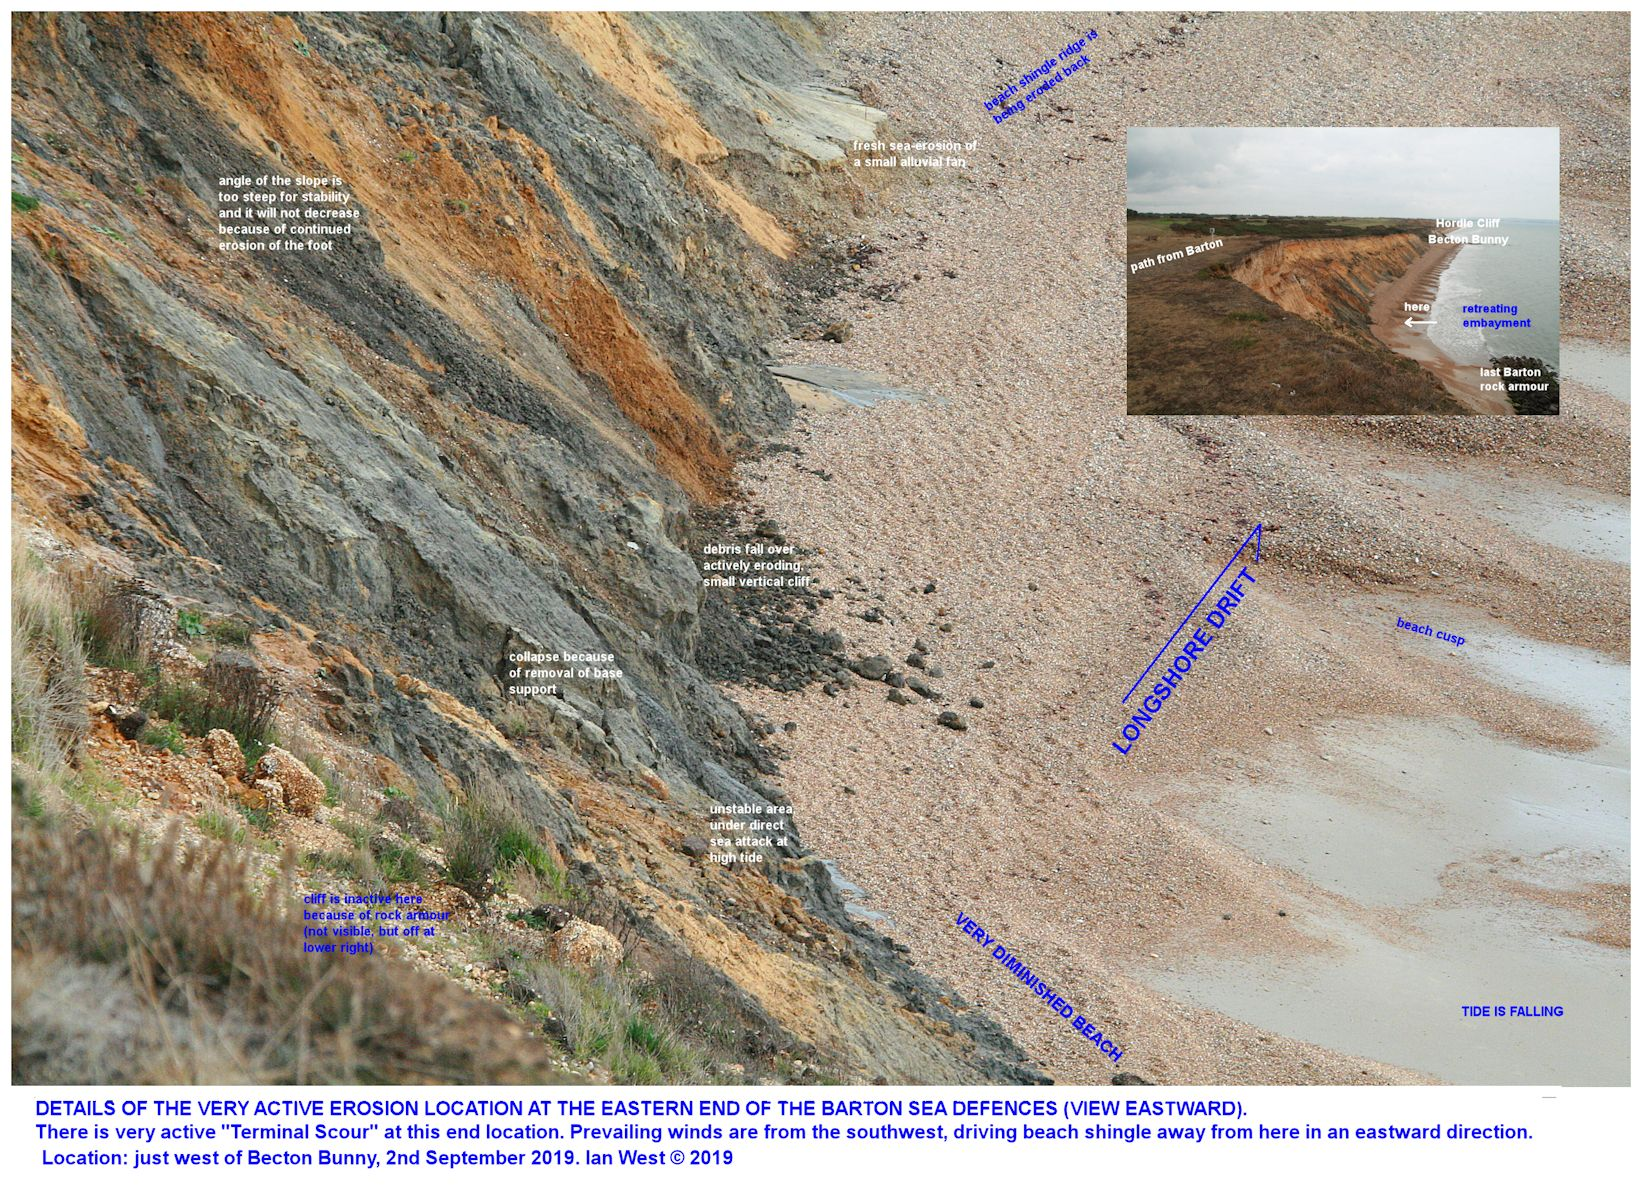 Details of active cliff erosion and cliff collapse just to the west of Becton Bunny, Barton-on-Sea, Hampshire, southern England, 2nd October 2019